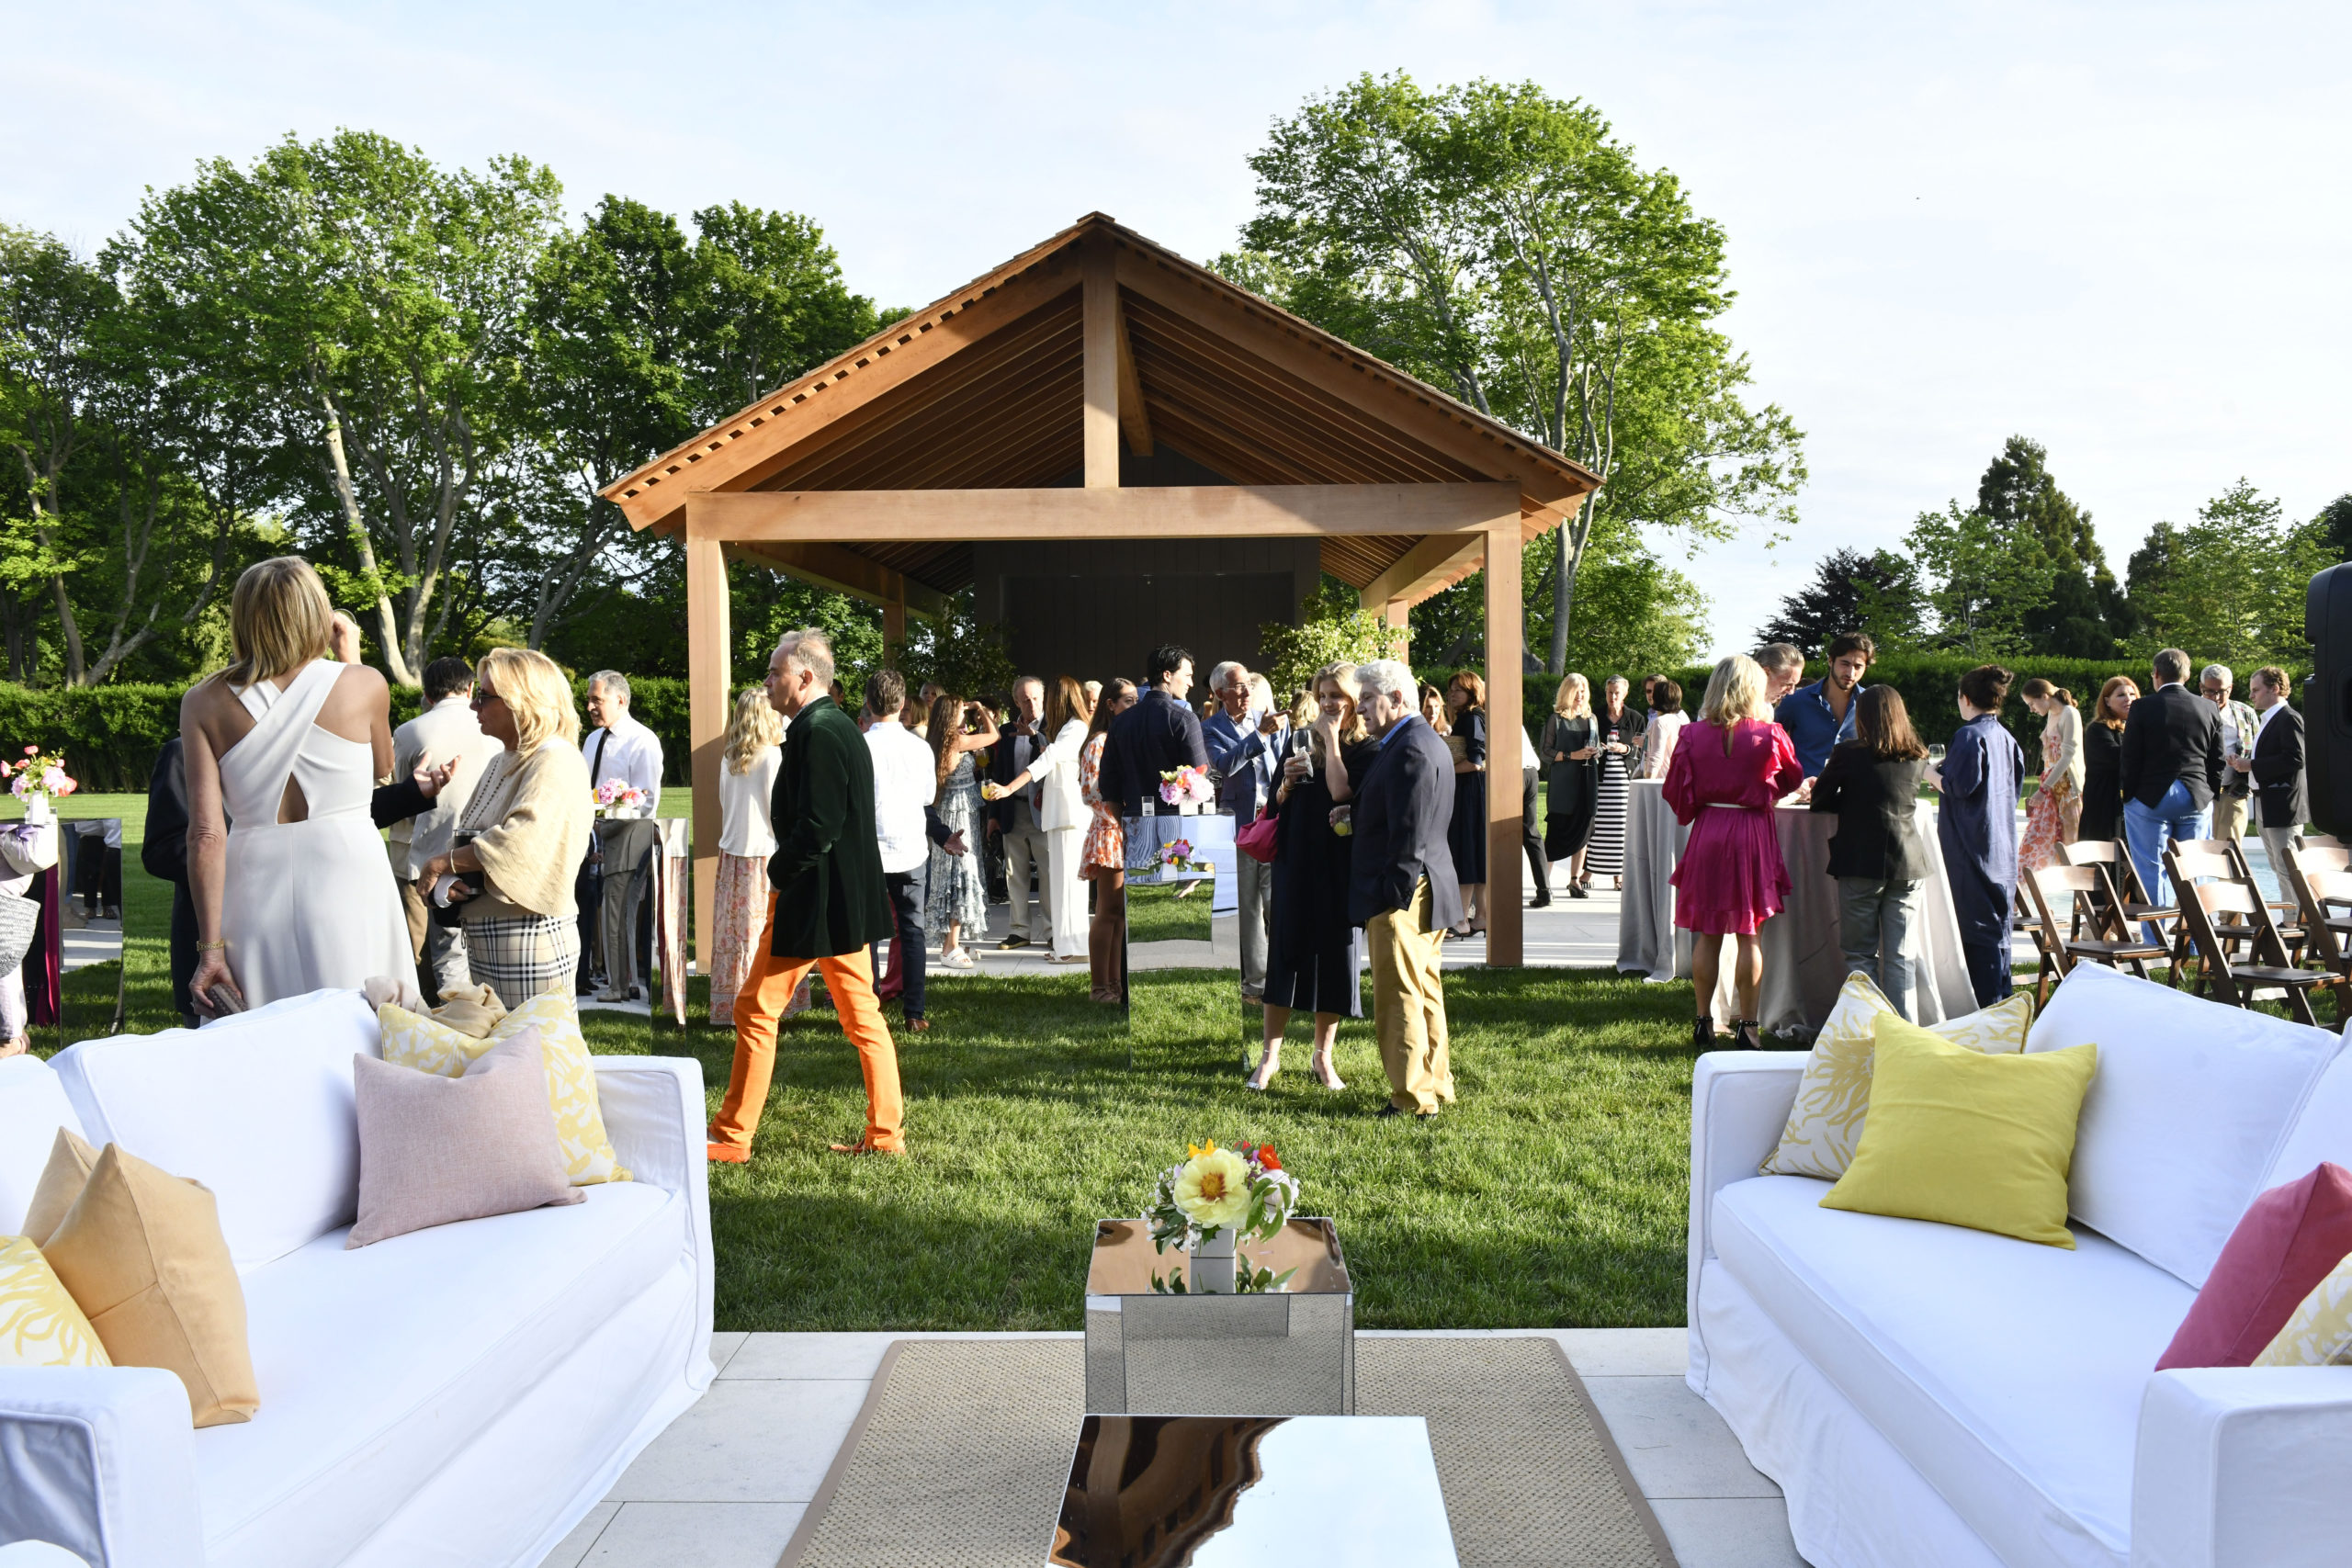 Local and celebrity guest, like, Brooke Shields, left, at the event at the newly restored Grosvenor Atterbury Estate in Southampton Village on June 12.  DANA SHAW